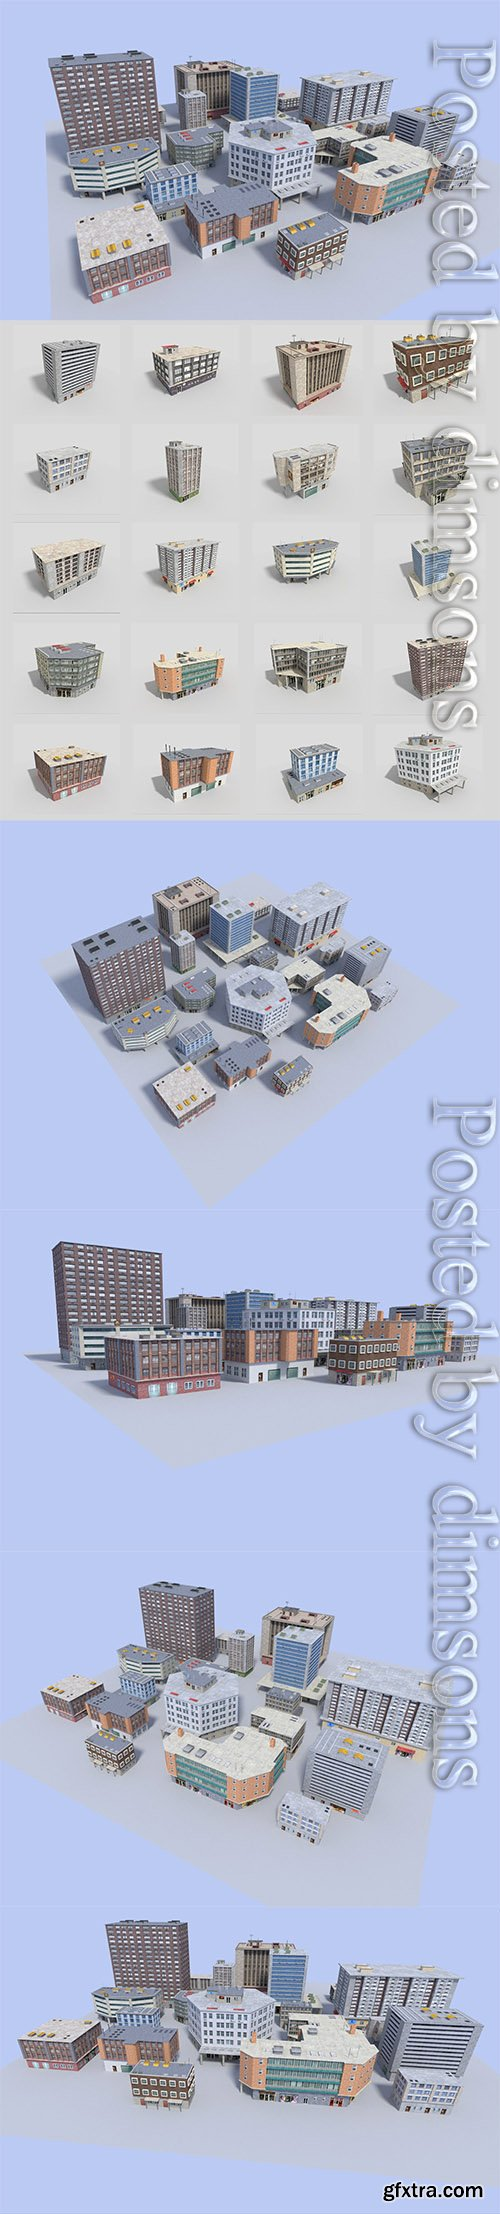 Cgtrader - 20 city building collection Low-poly 3D model